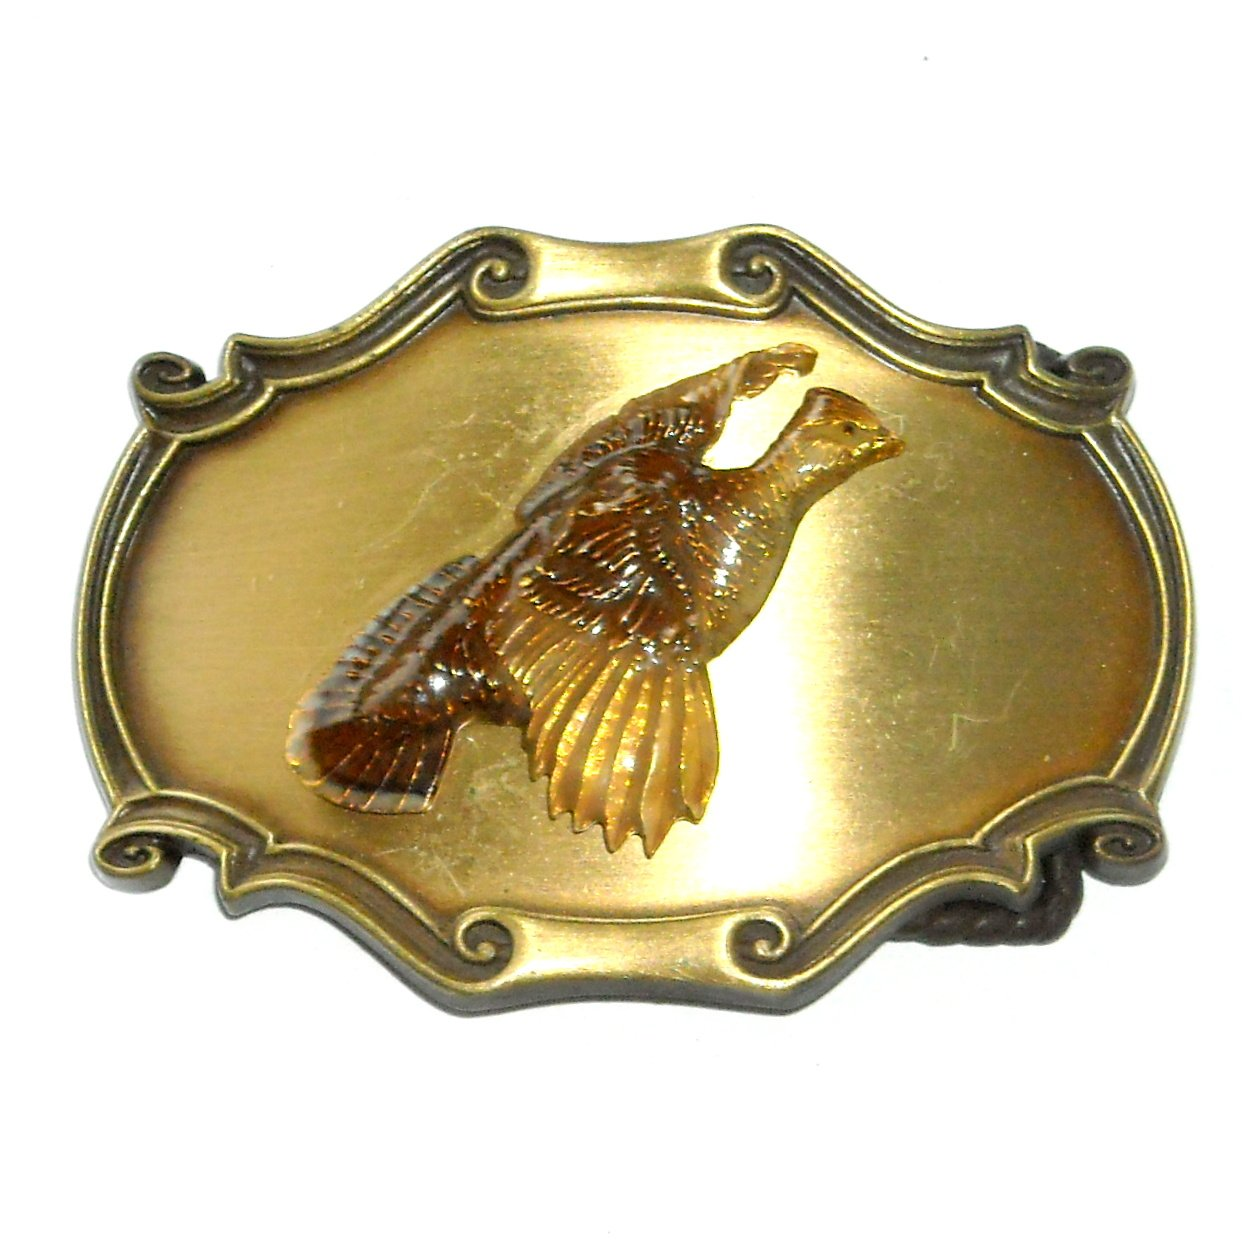 Washington Quail Trophy 3D Vintage Raintree Belt Buckle